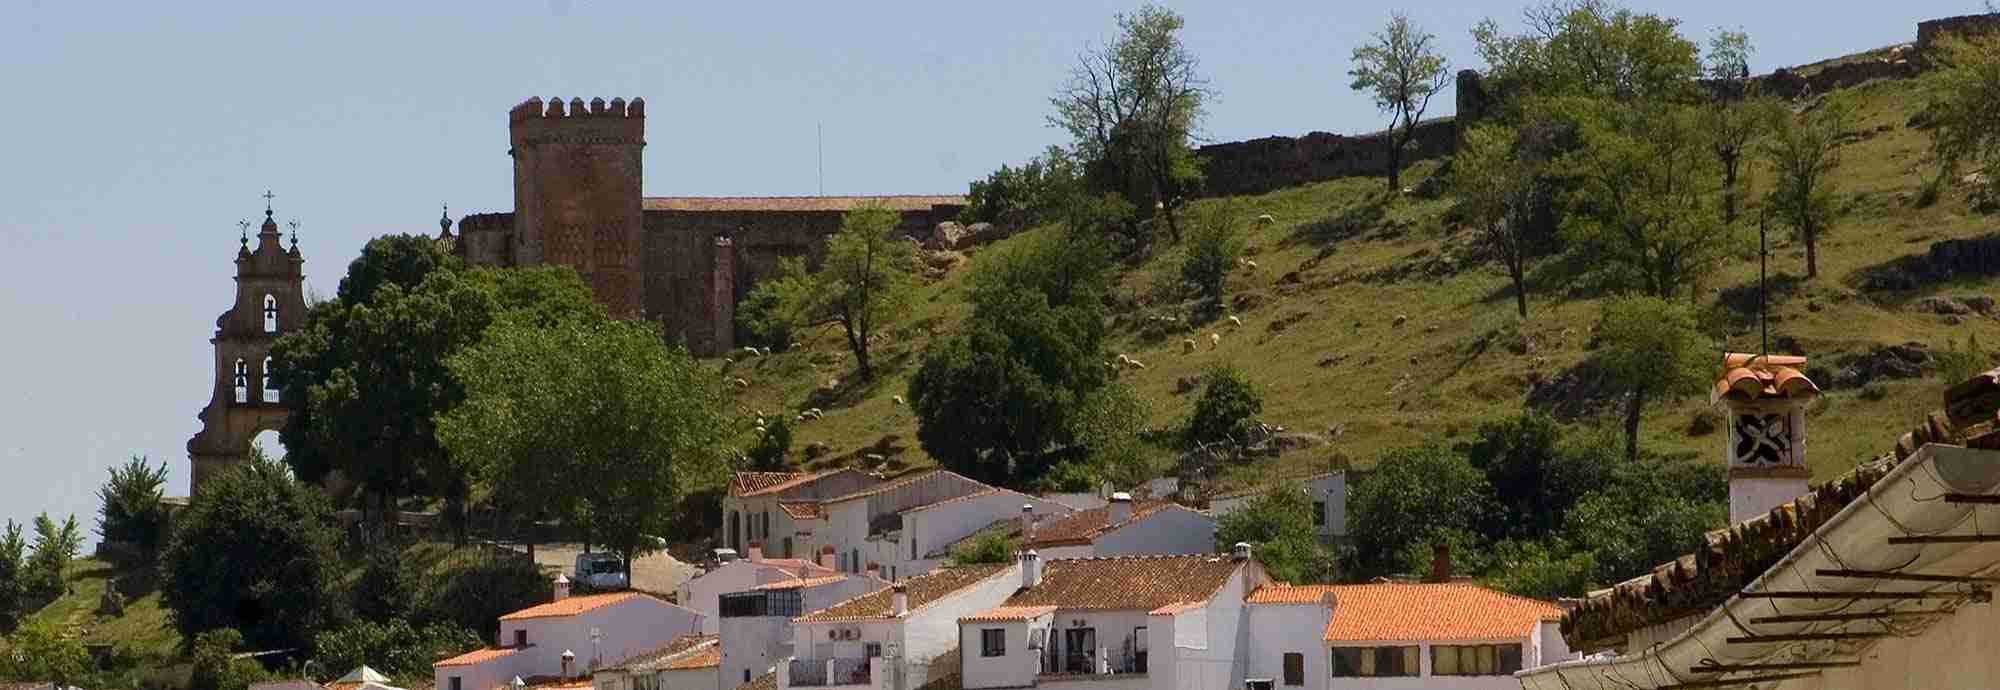 Deals for Holiday  Villas in Aracena